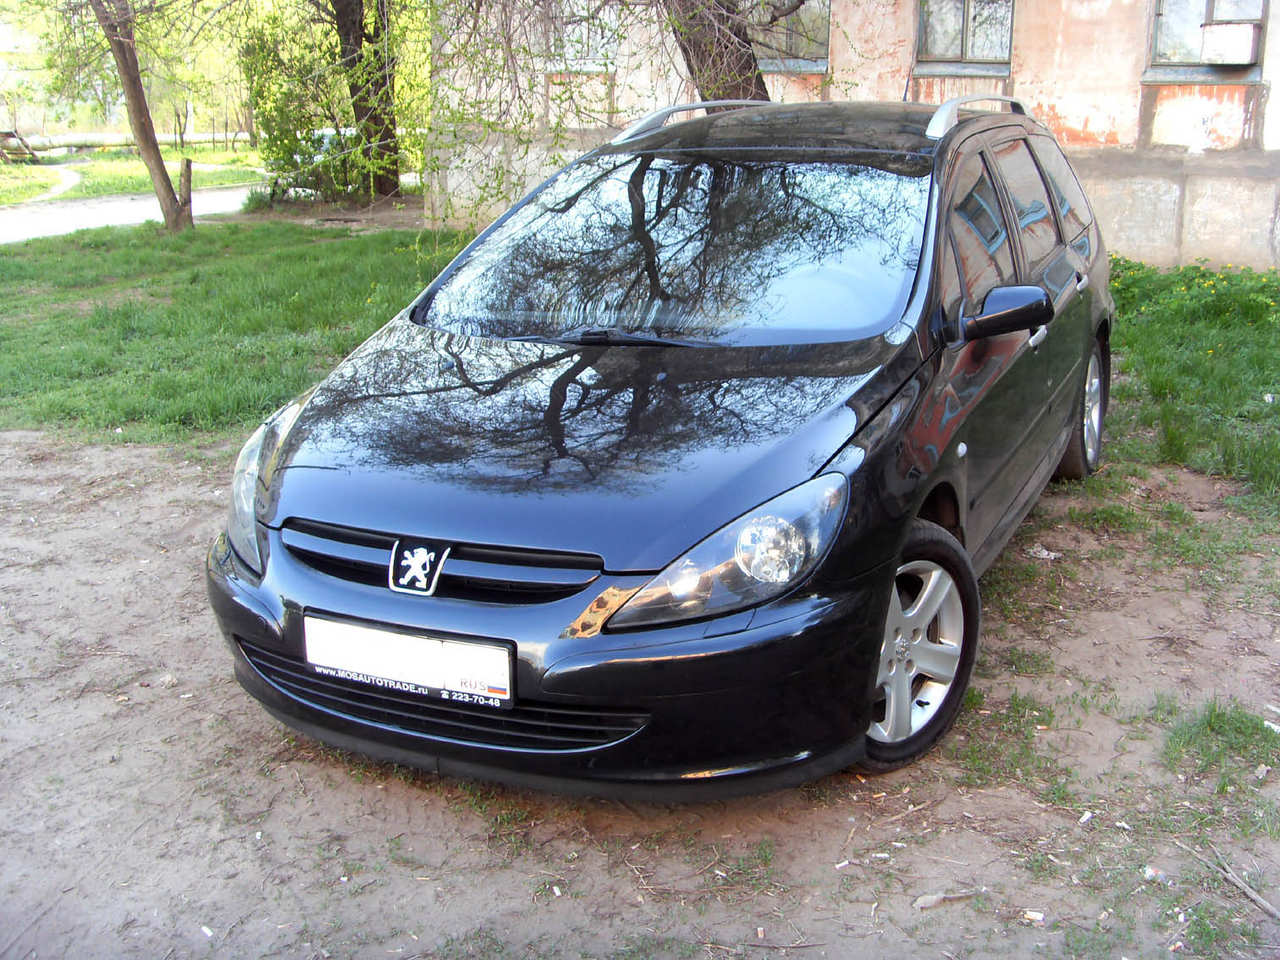 used 2003 peugeot 307 photos 1997cc gasoline ff automatic for sale. Black Bedroom Furniture Sets. Home Design Ideas